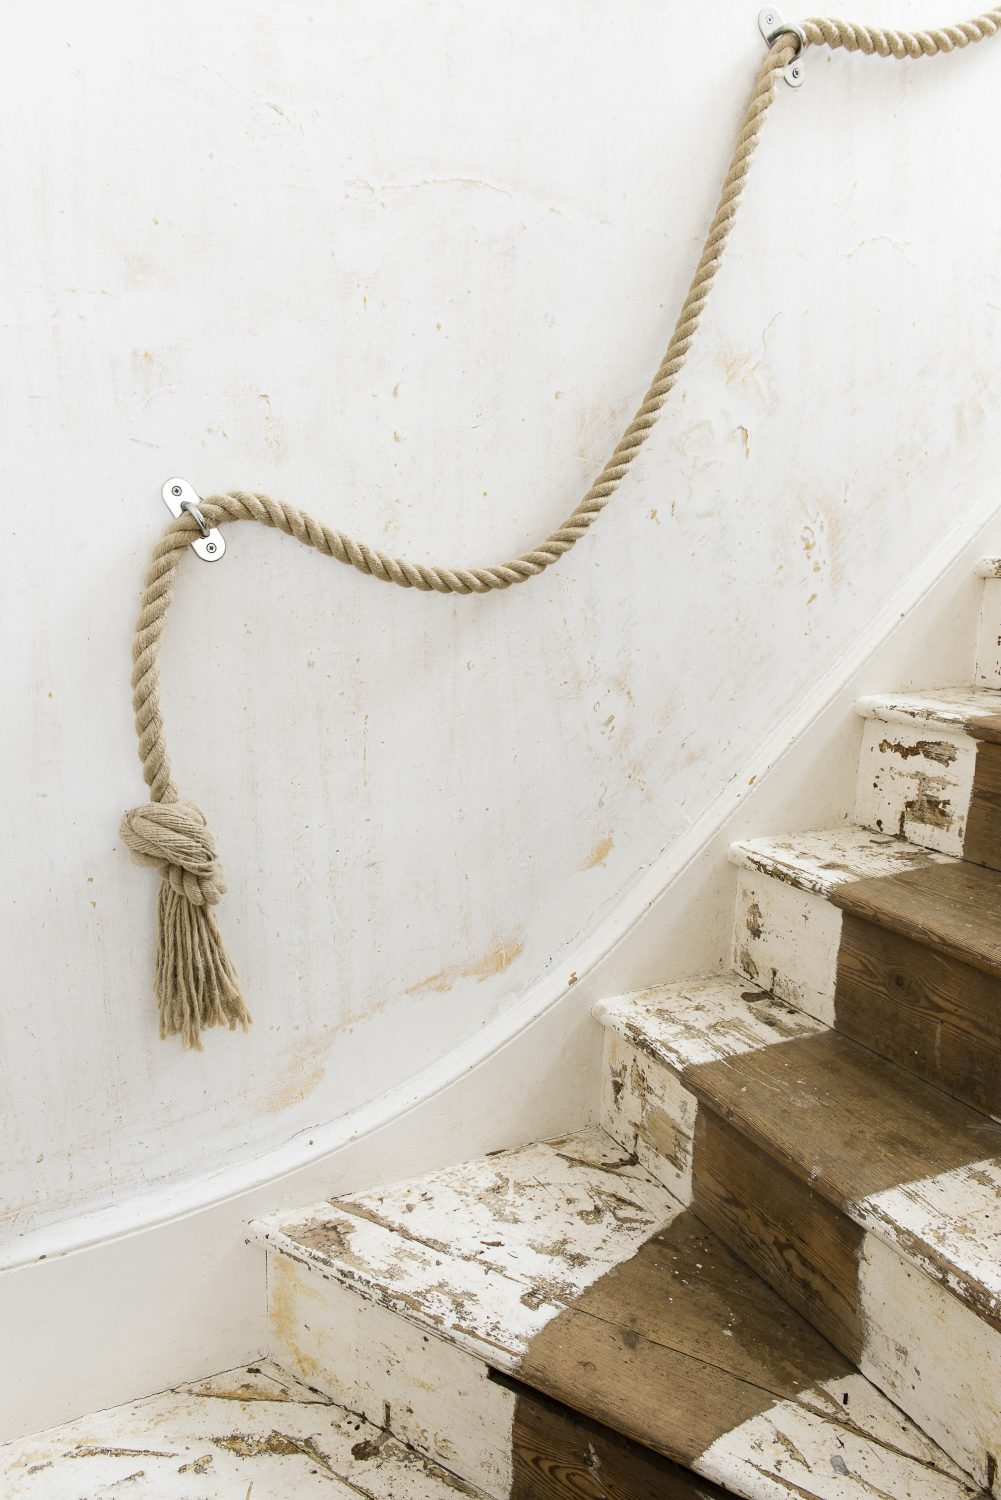 The staircase from the ground floor up to the first floor. The rope handrail is a subtle nod to the maritime connection of the cottage